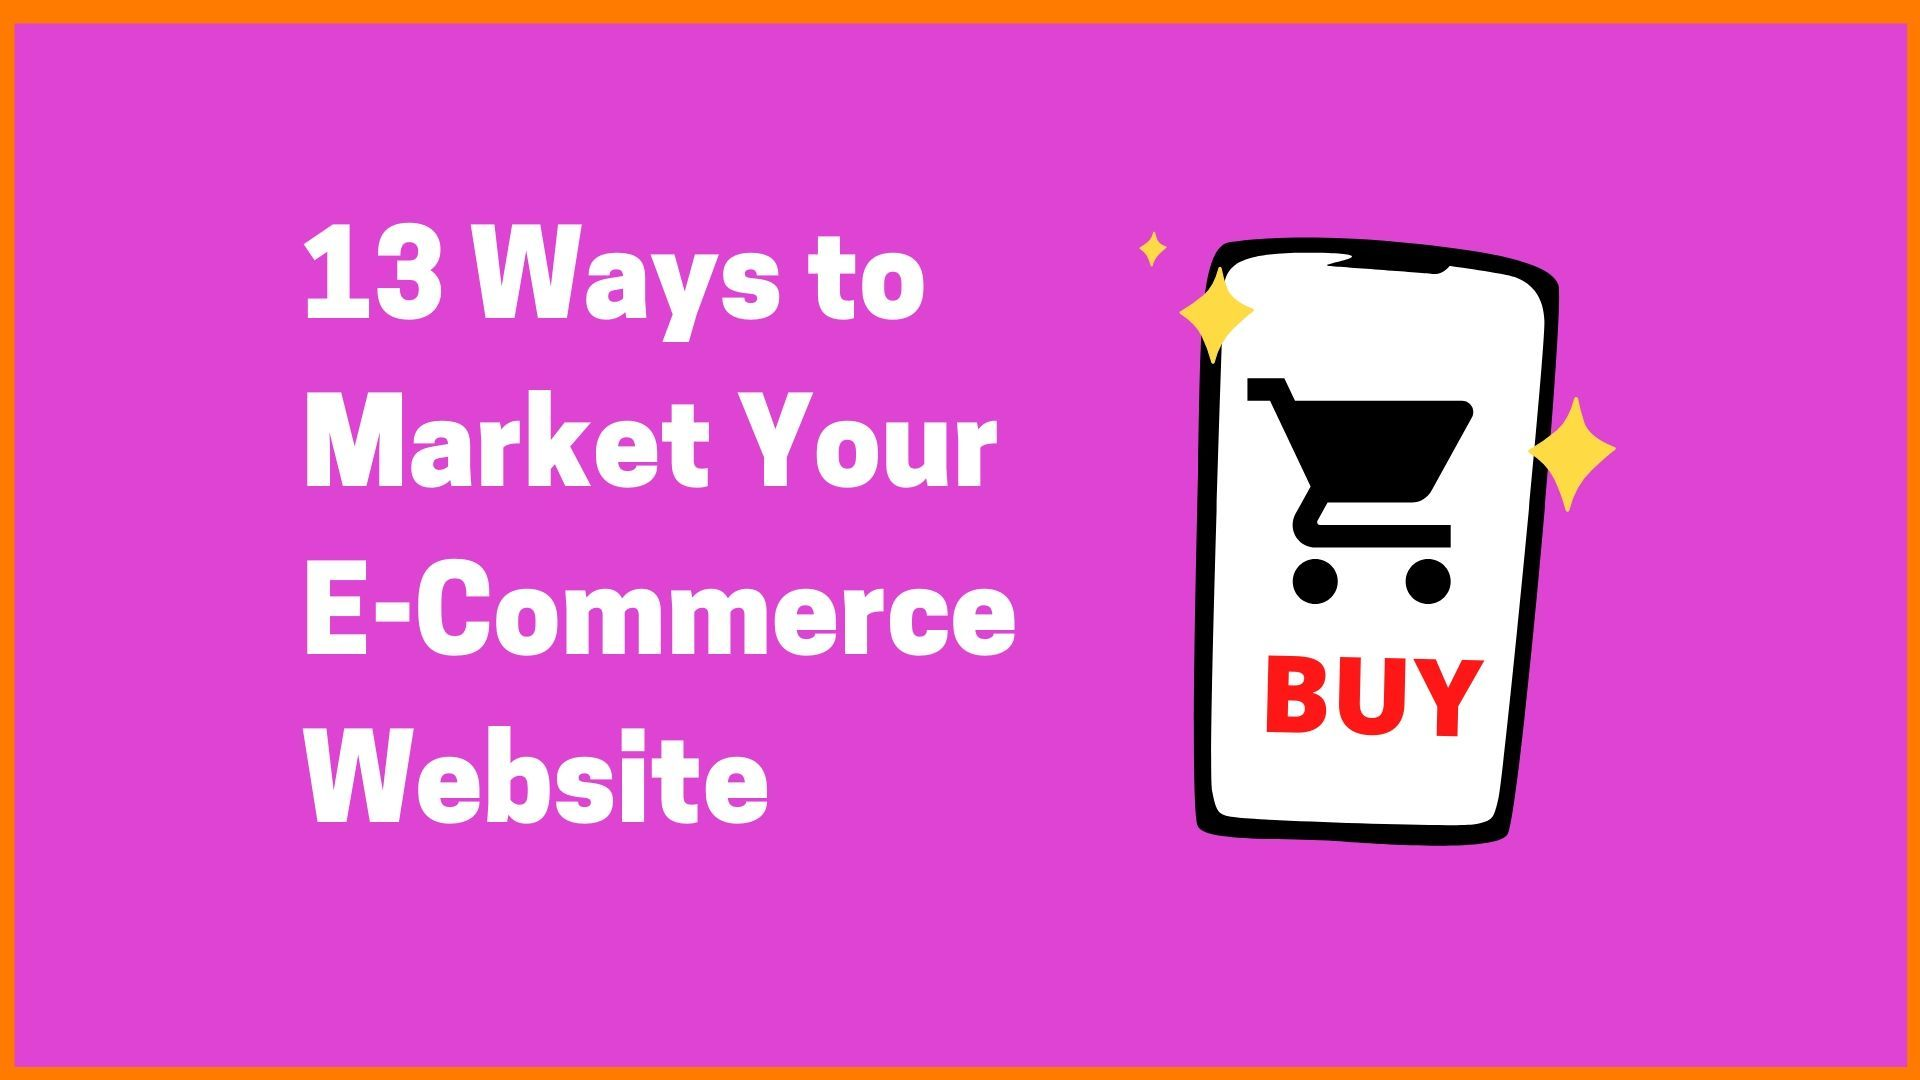 13 Ways to Market Your E-Commerce Website in 2021